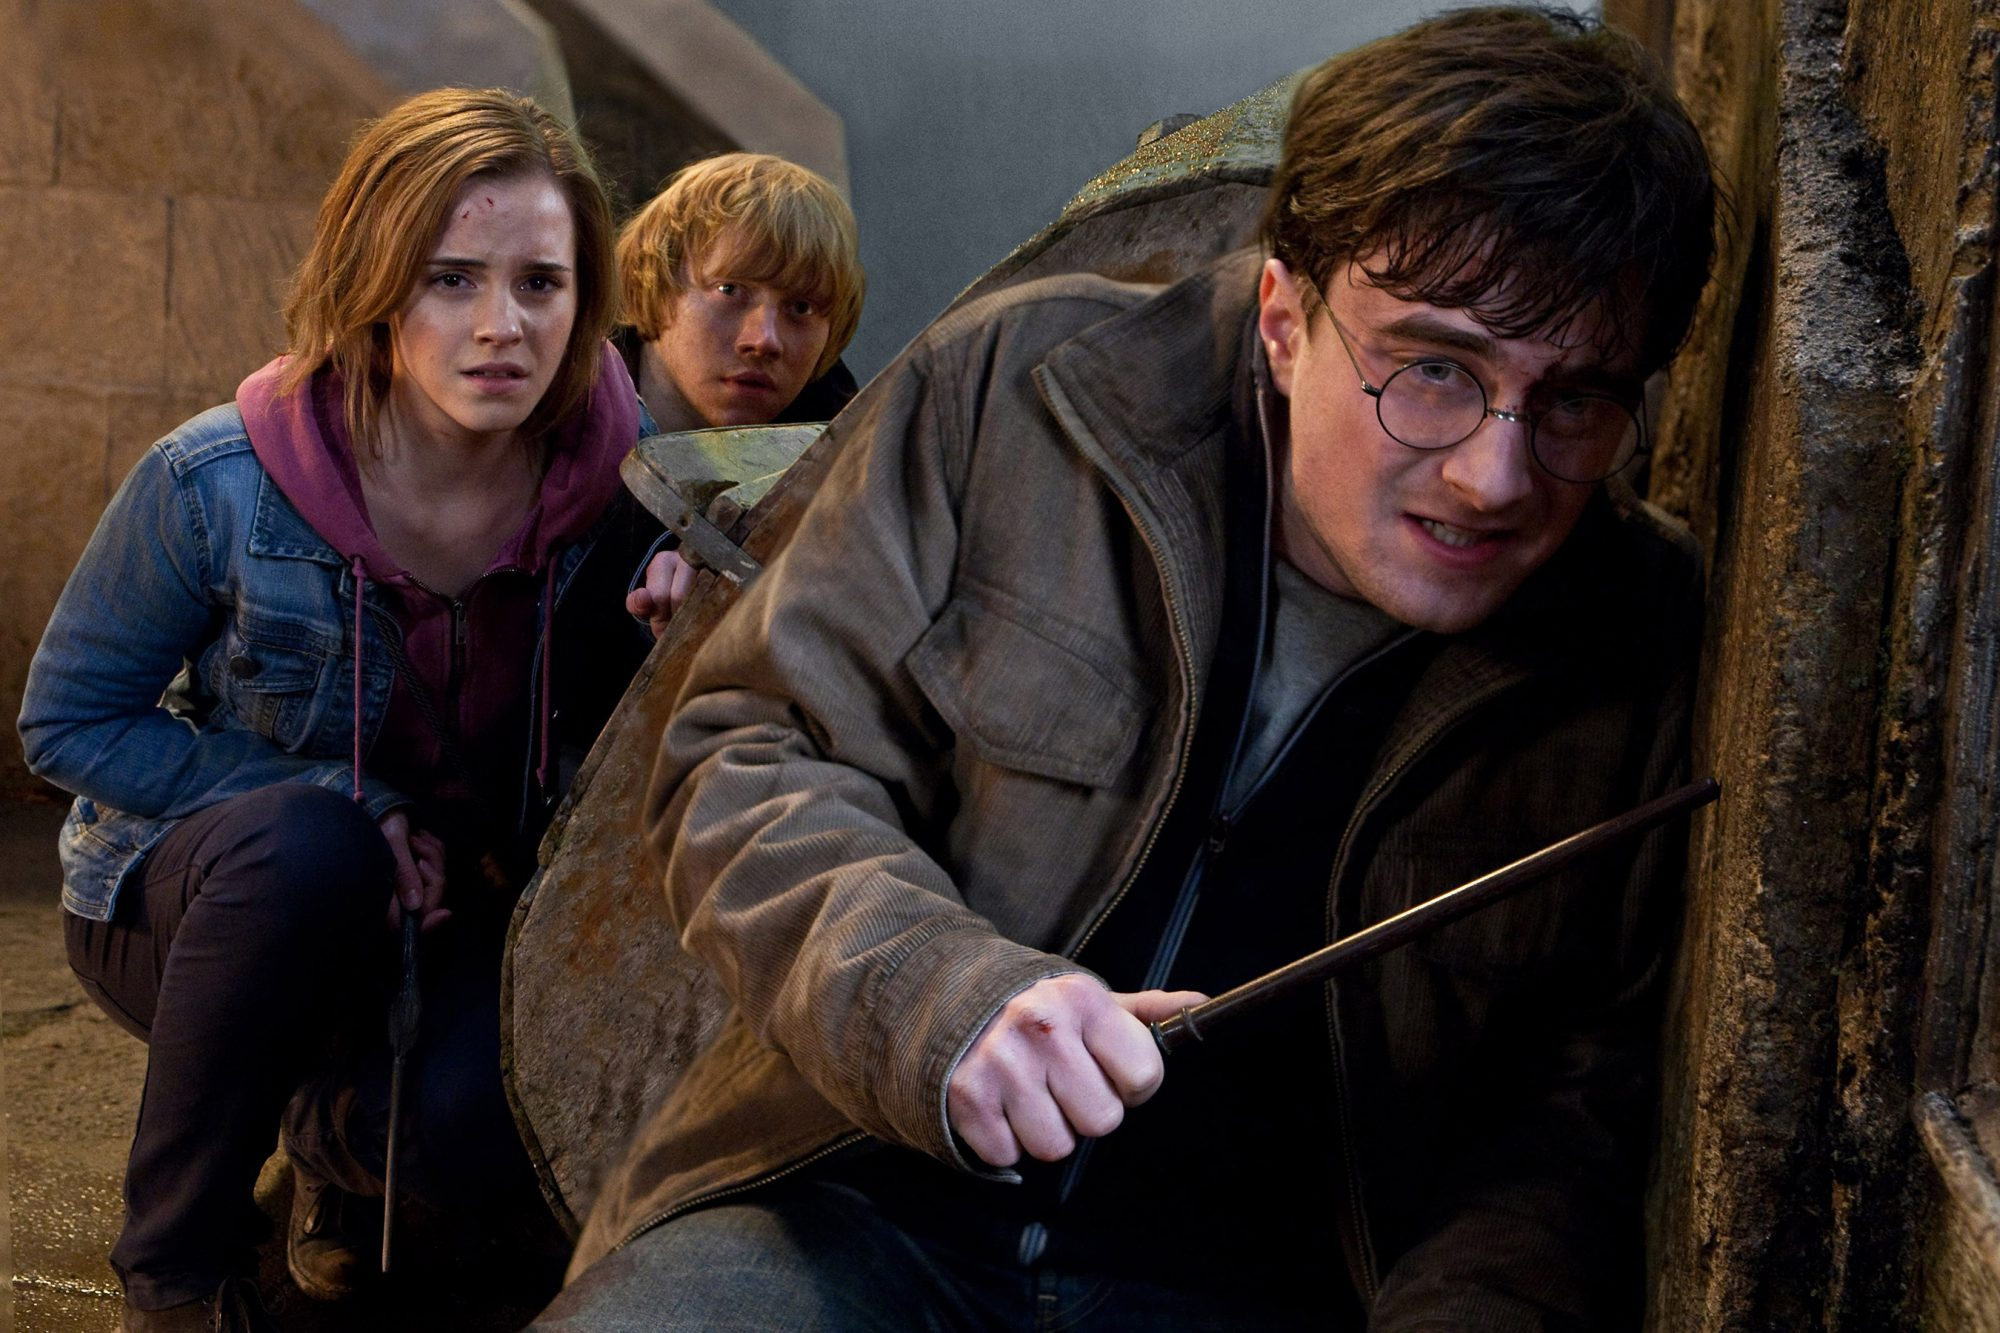 HARRY POTTER AND THE DEATHLY HALLOWS: PART 2, from left: Emma Watson, Rupert Grint, Daniel Radcliffe